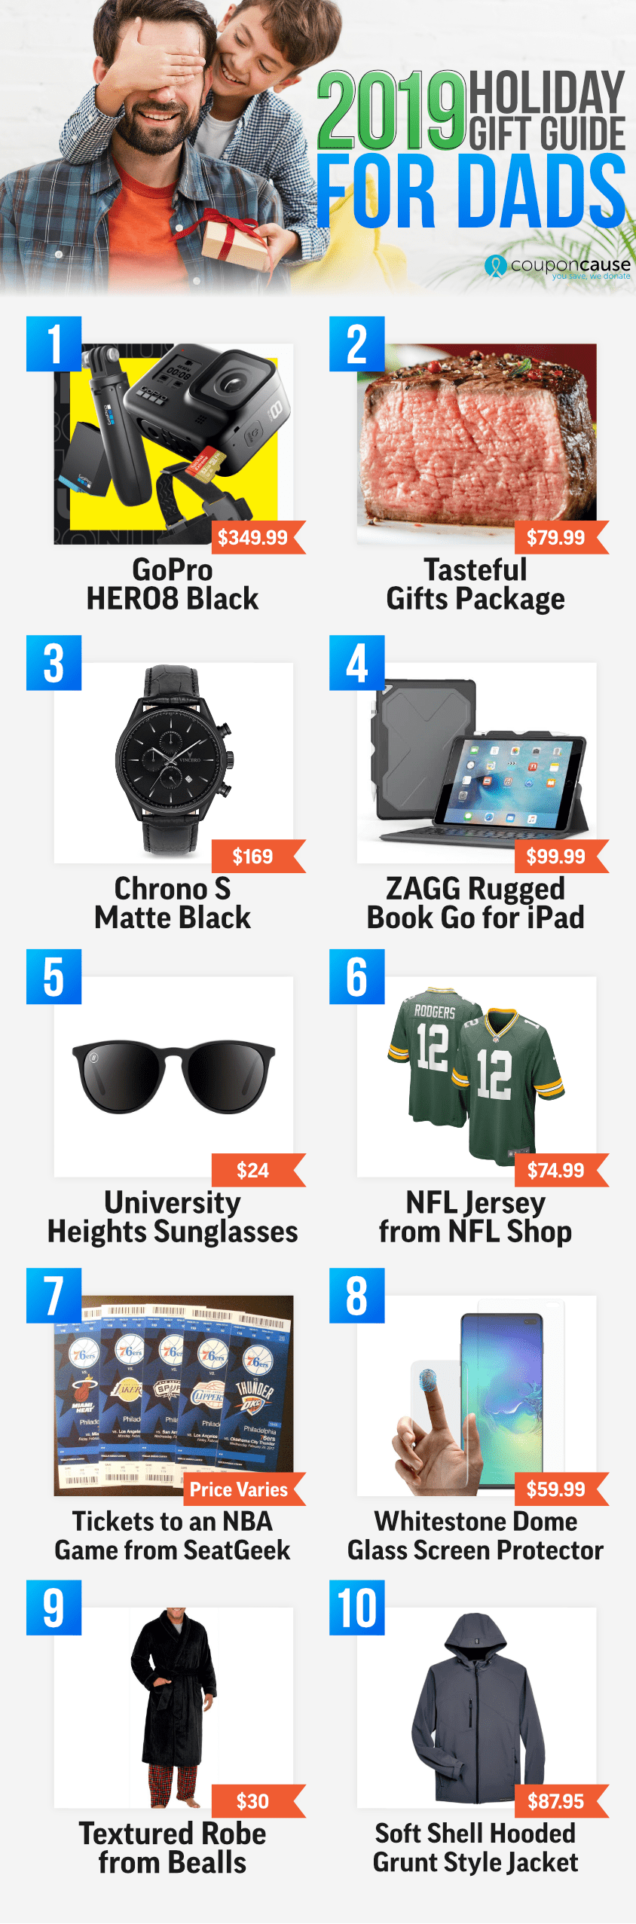 CouponCause Holiday Gift Guide for Dads 2019